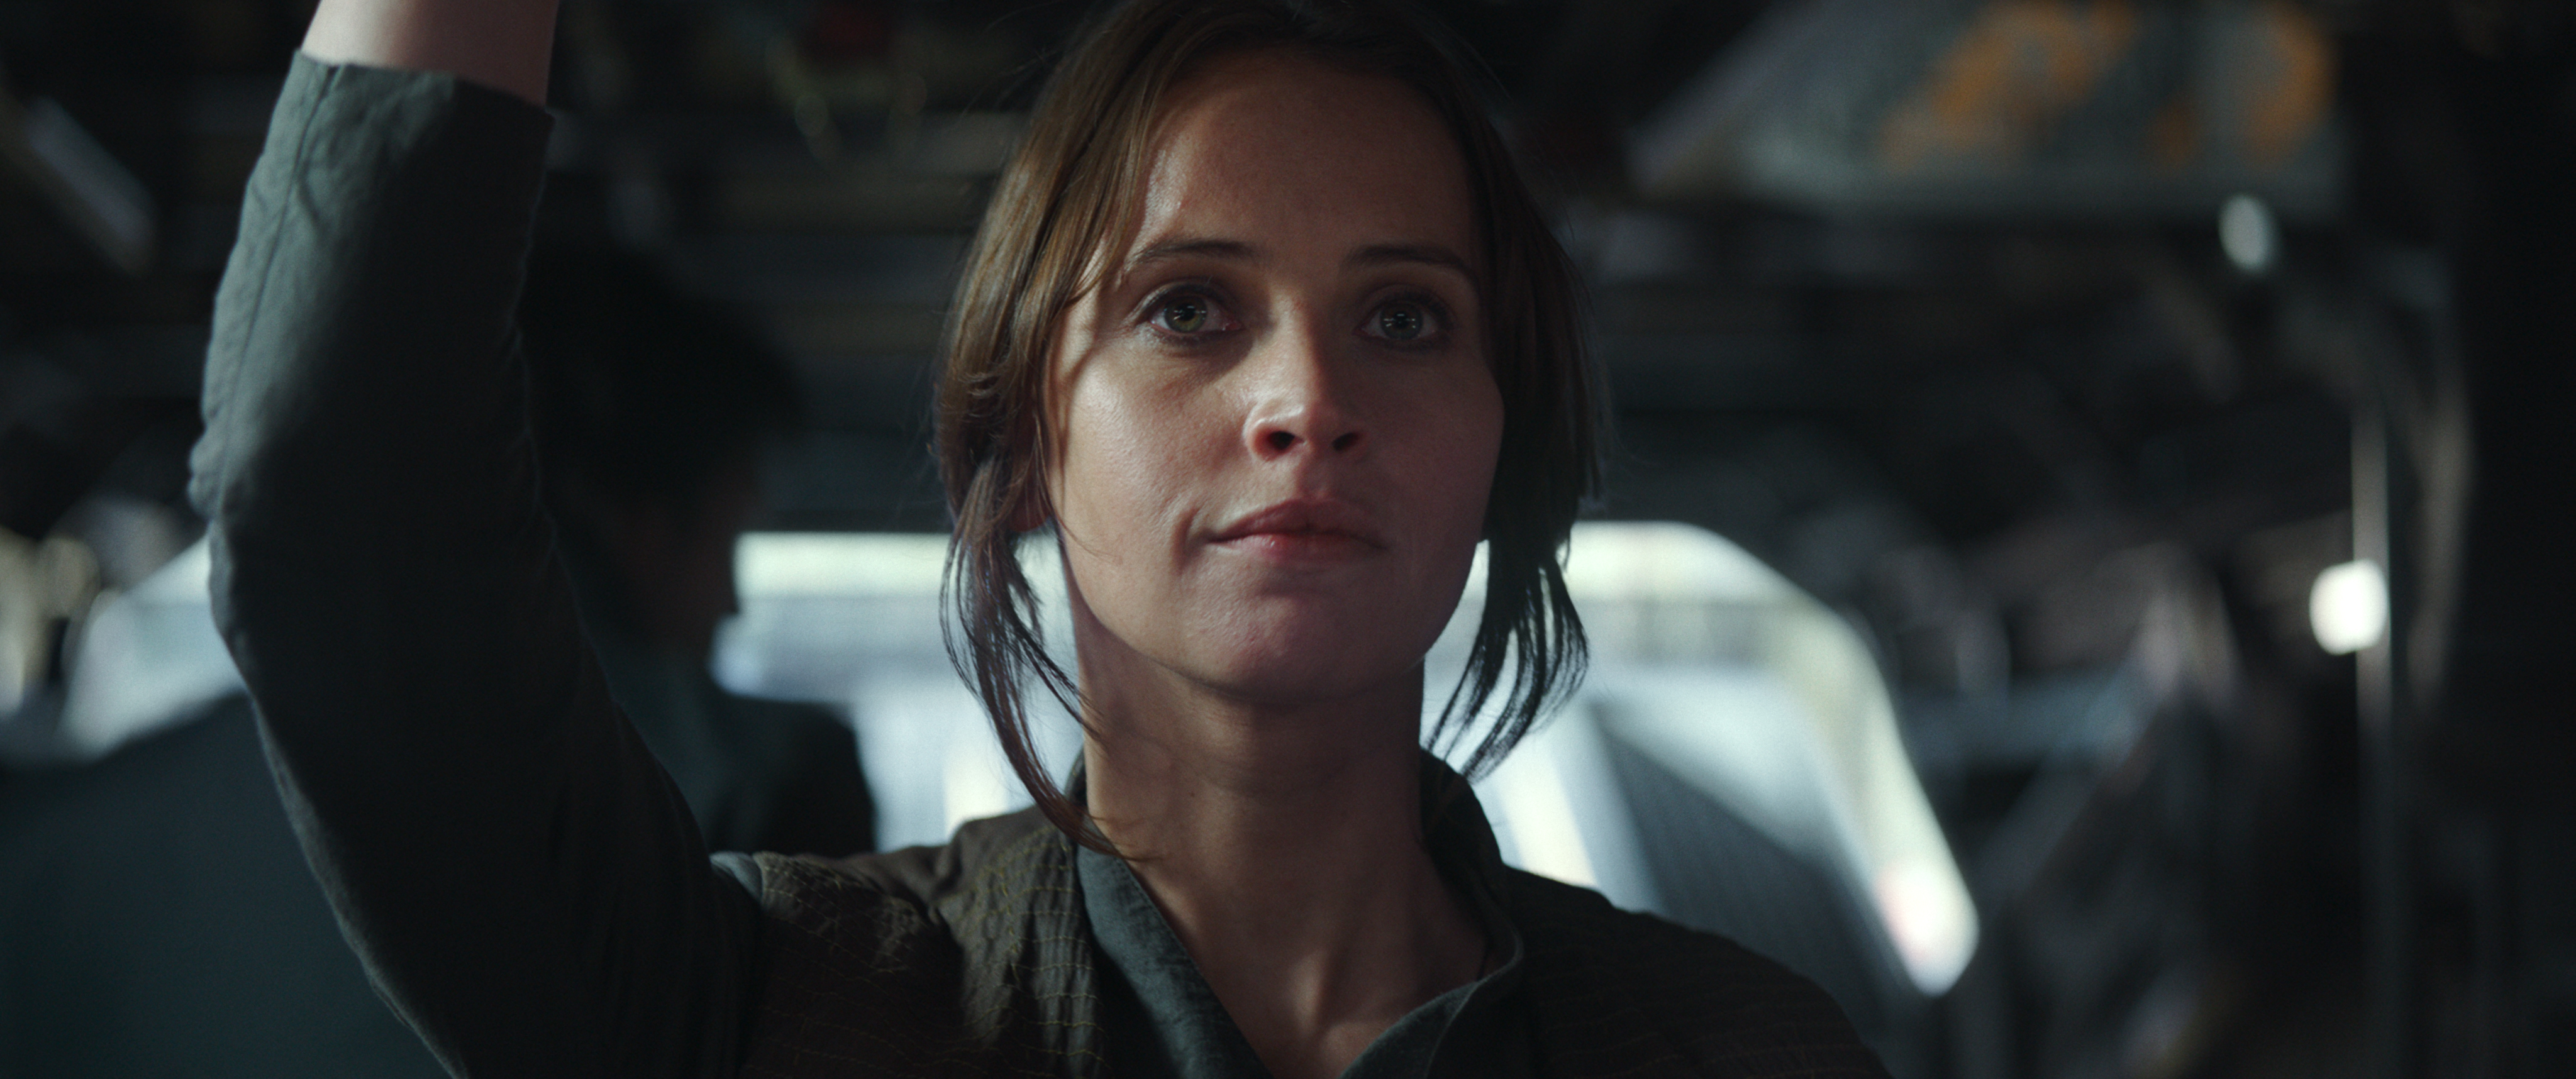 A Strong Female Role Model in Felicity Jones